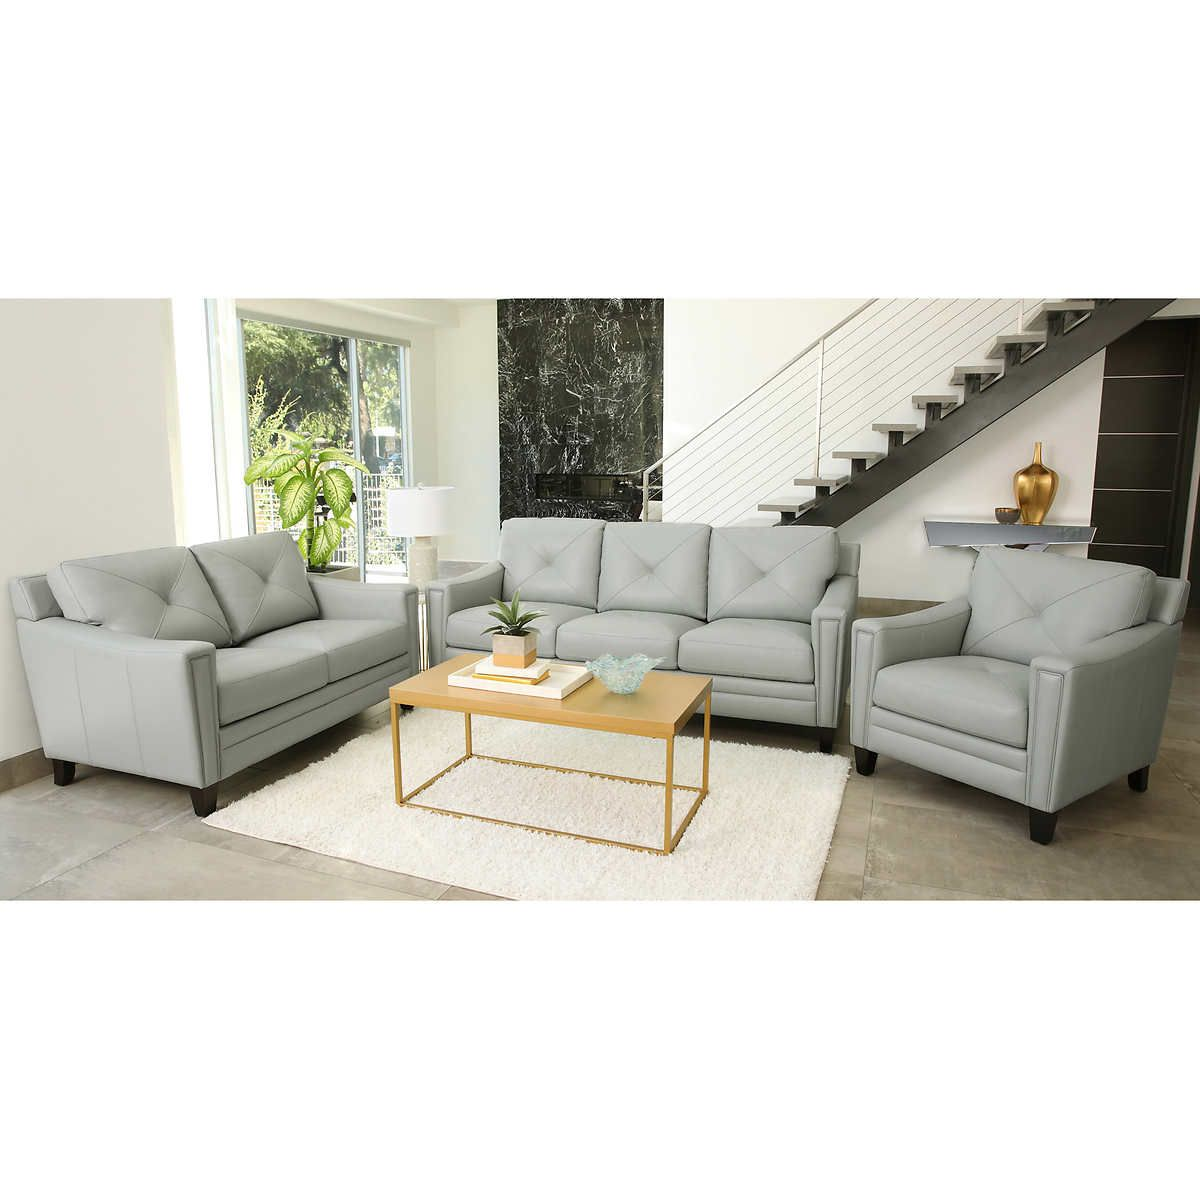 Best Costco 2699 For Set 3 Piece Living Room Set Dining 400 x 300